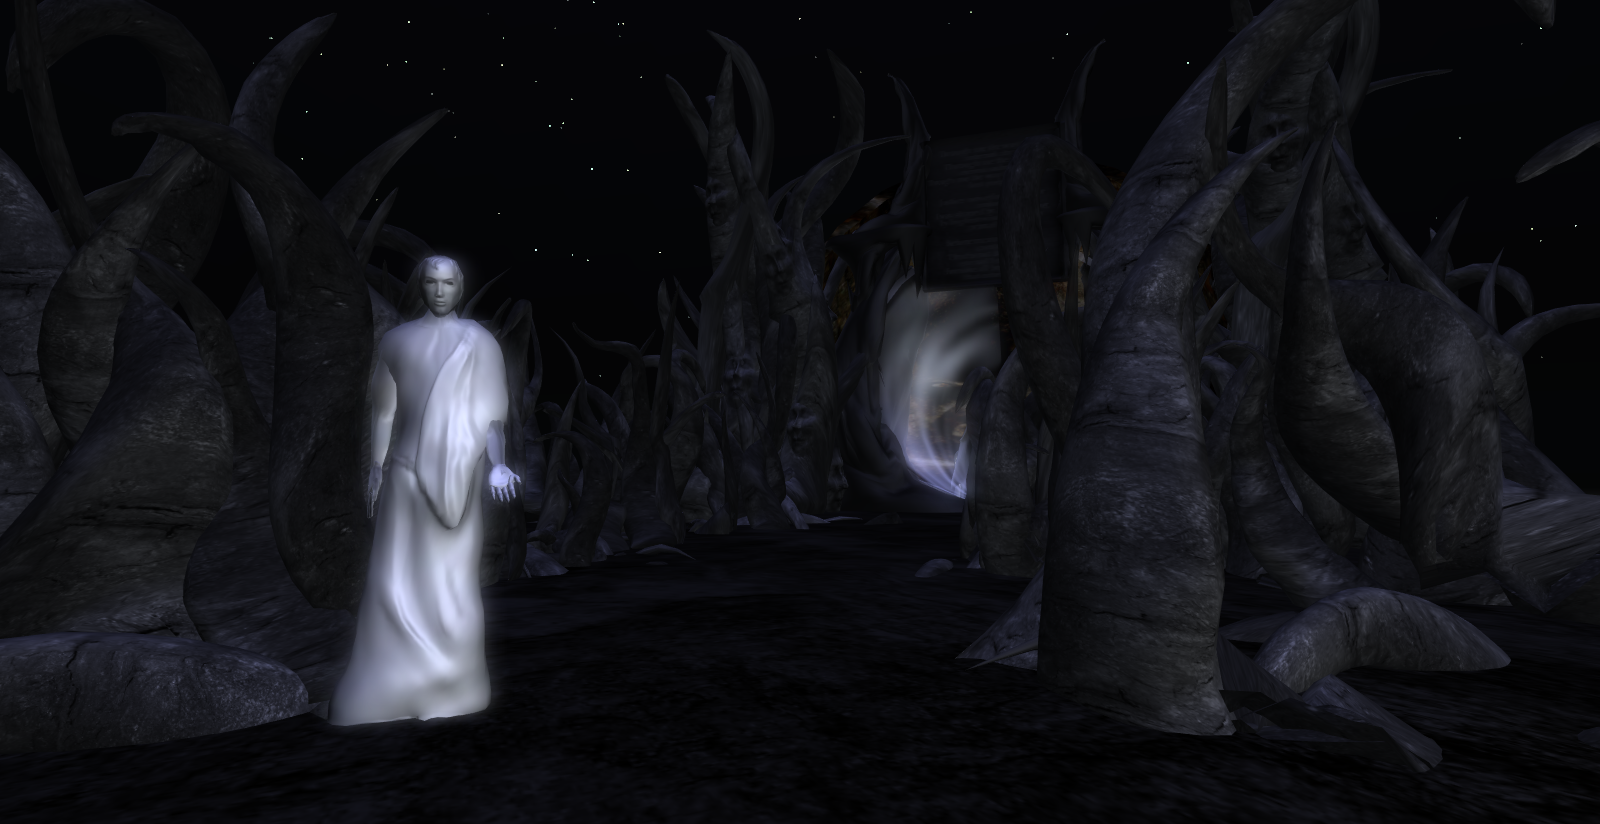 Entrance To Hades : The second life of nepherses amat dante s inferno by